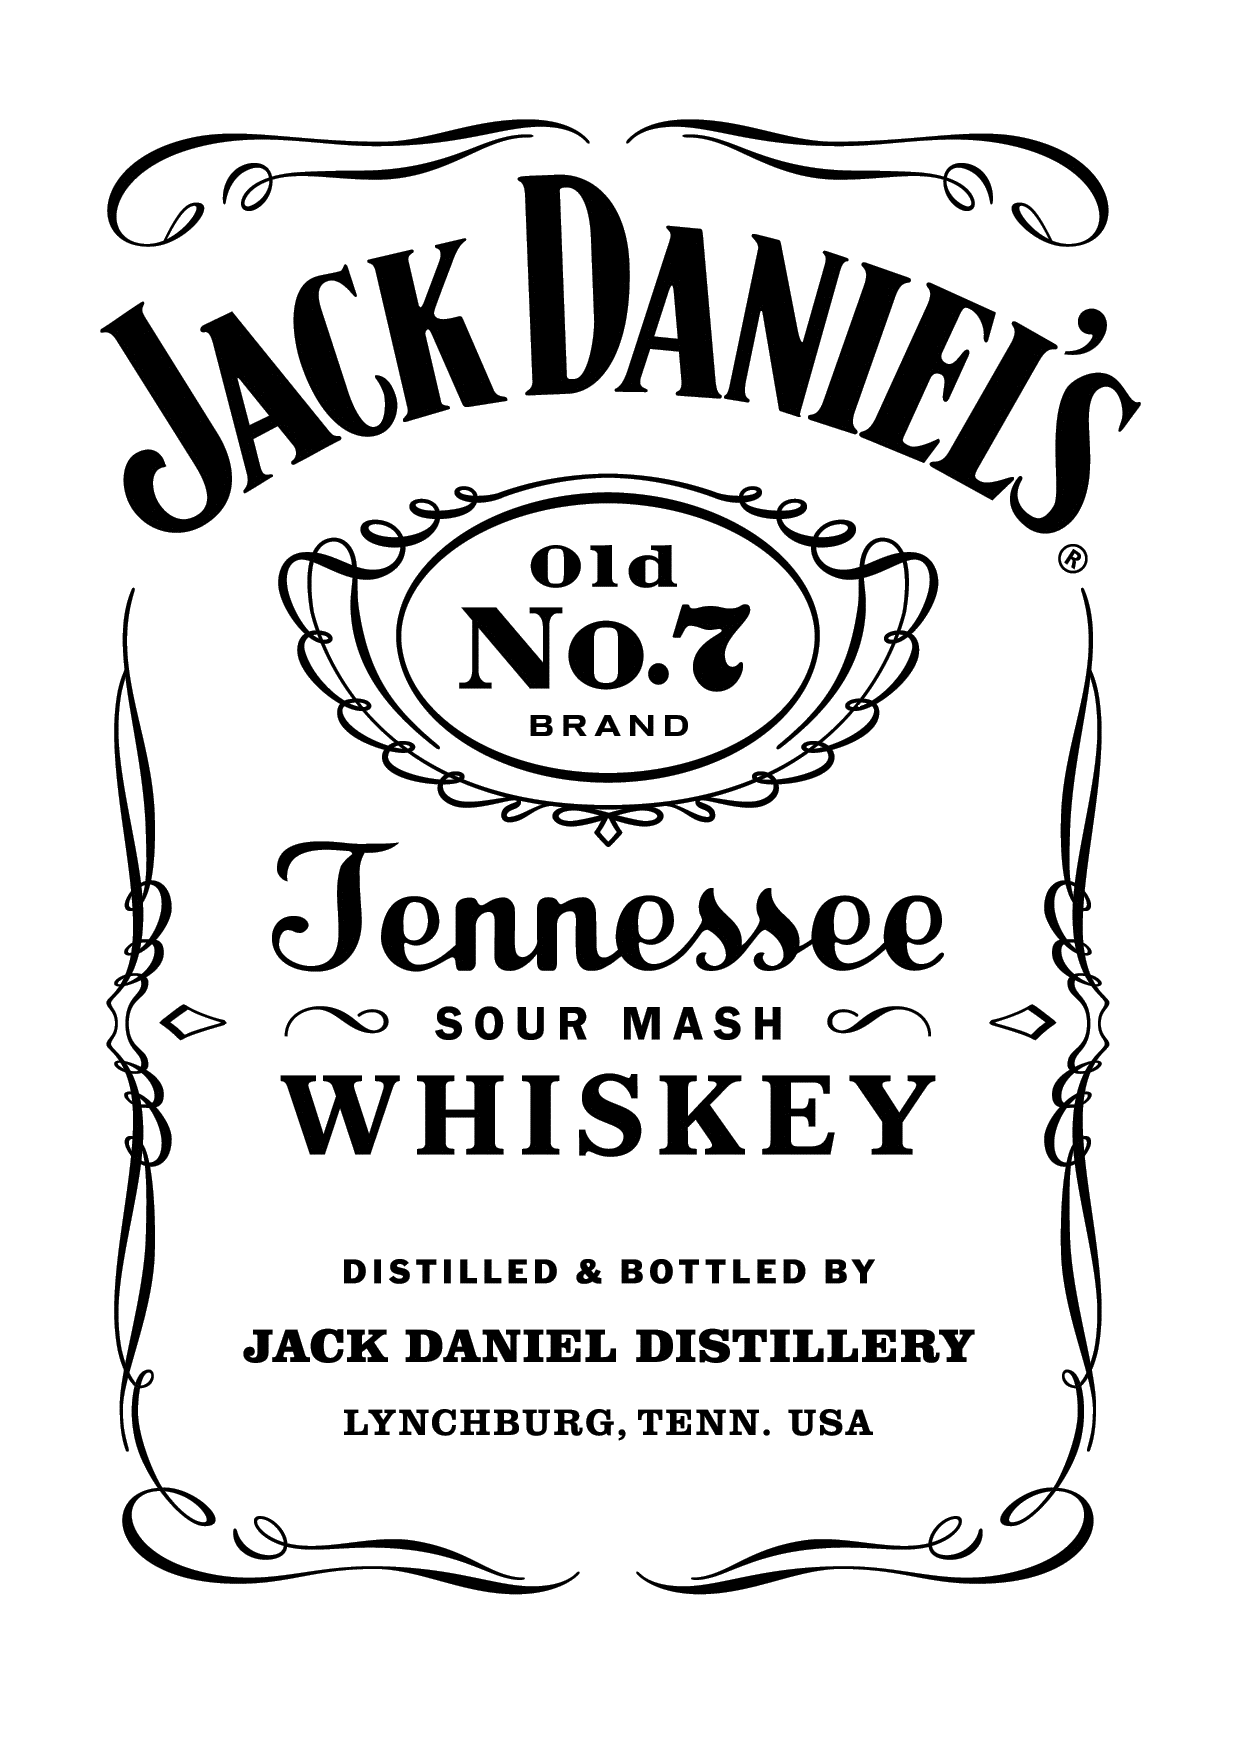 Chalk drawings png. Jack daniel s old